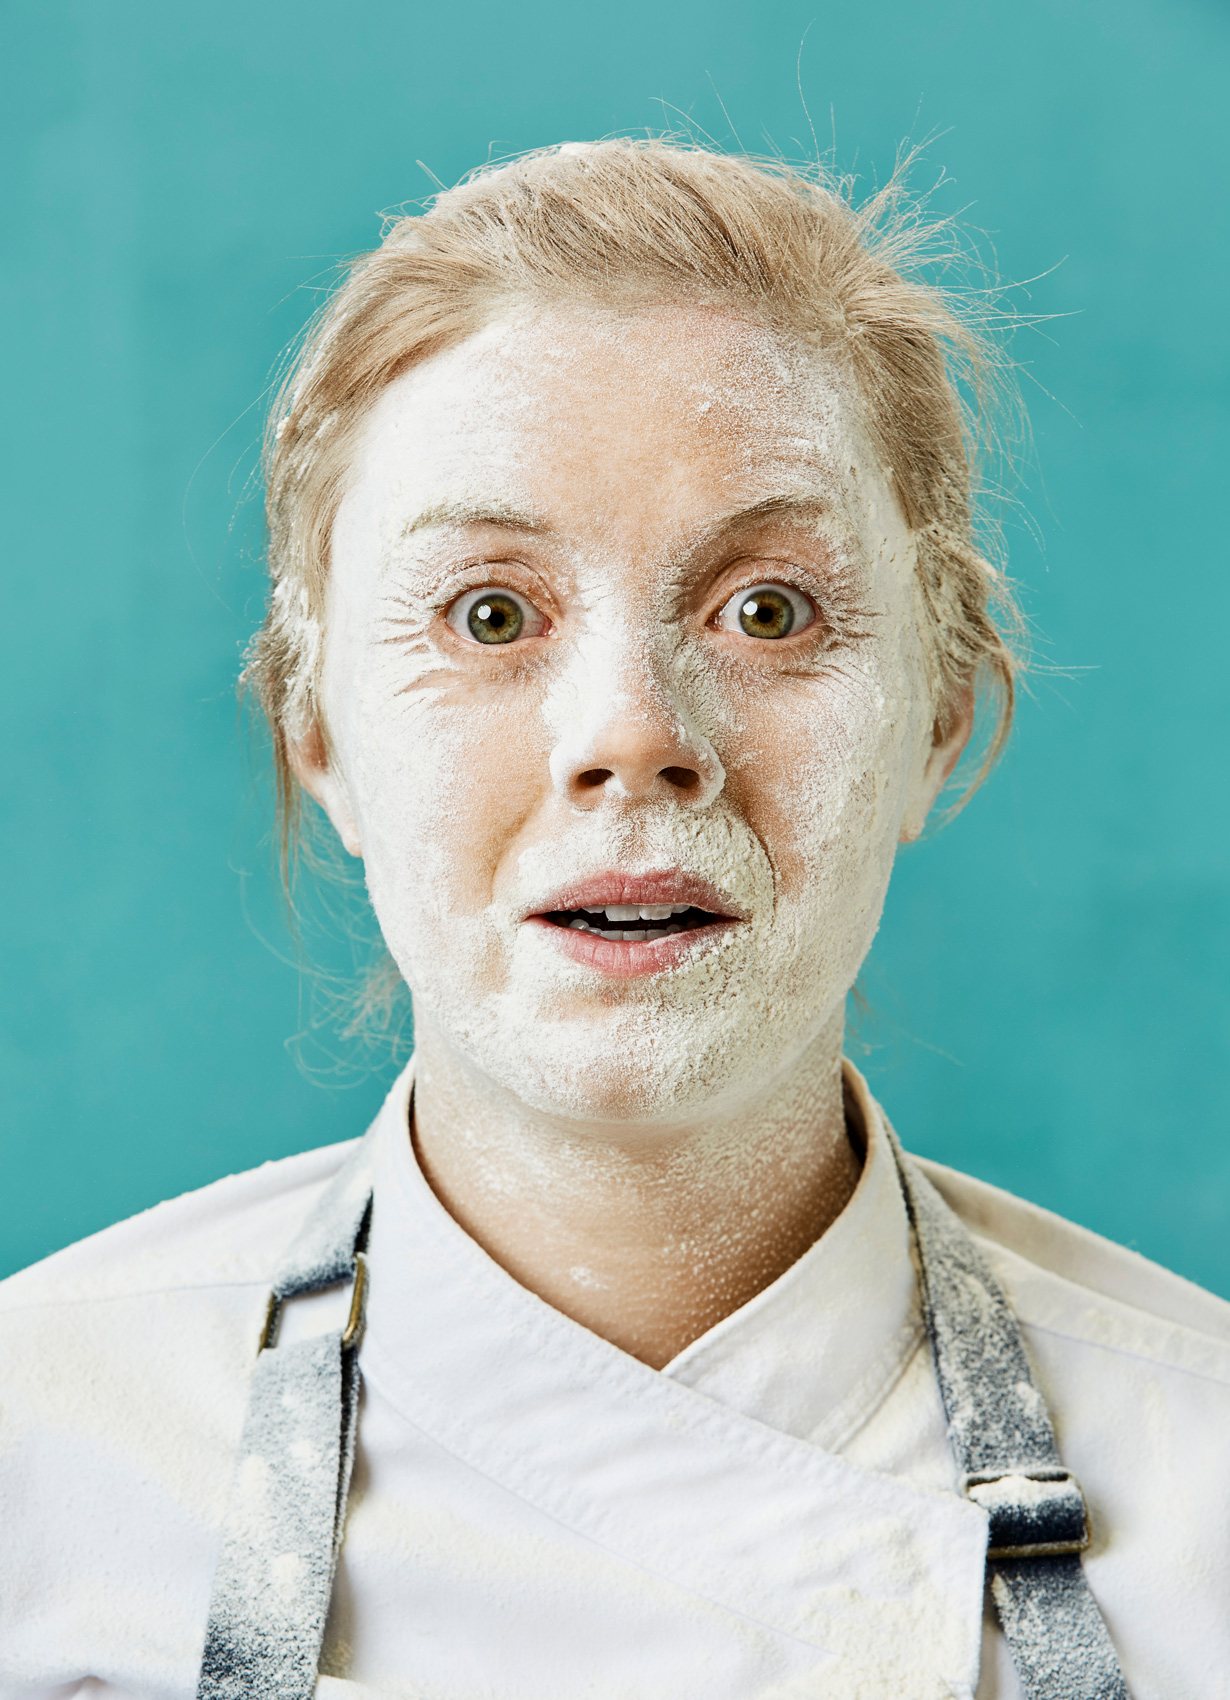 Philly Pastry Chef - Emily Riddell